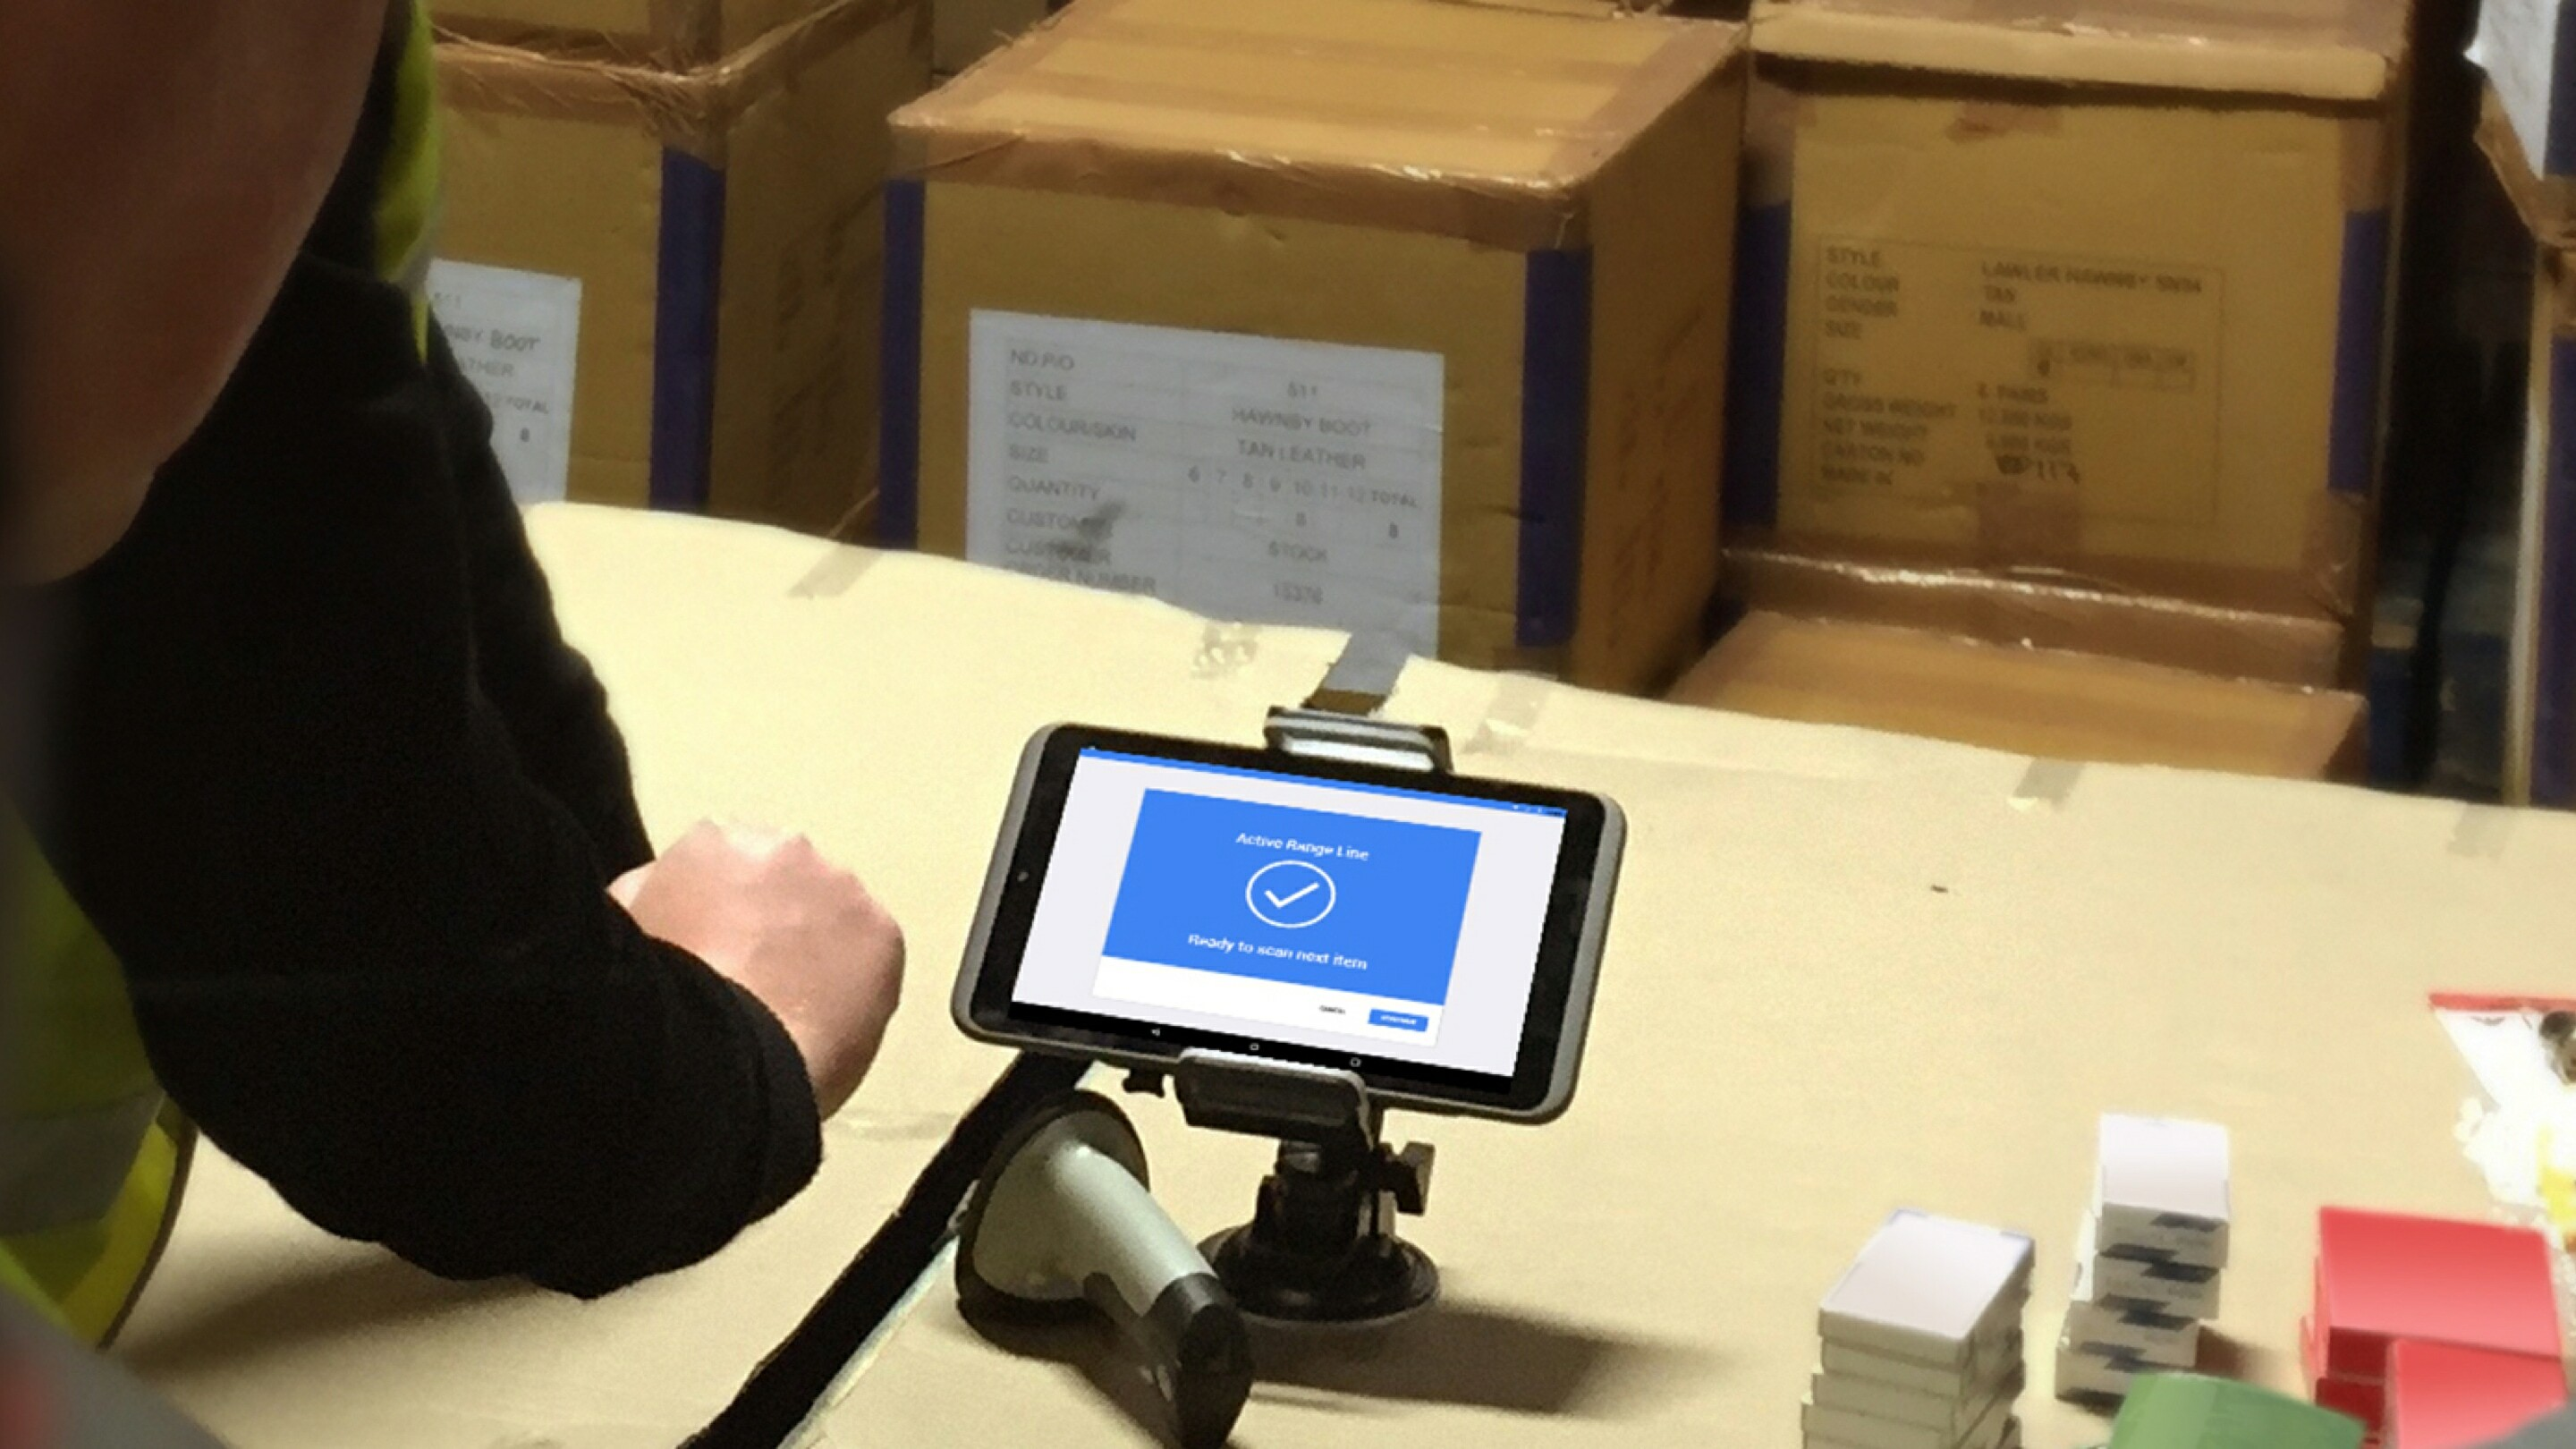 Warehouse photo of barcode scanning app